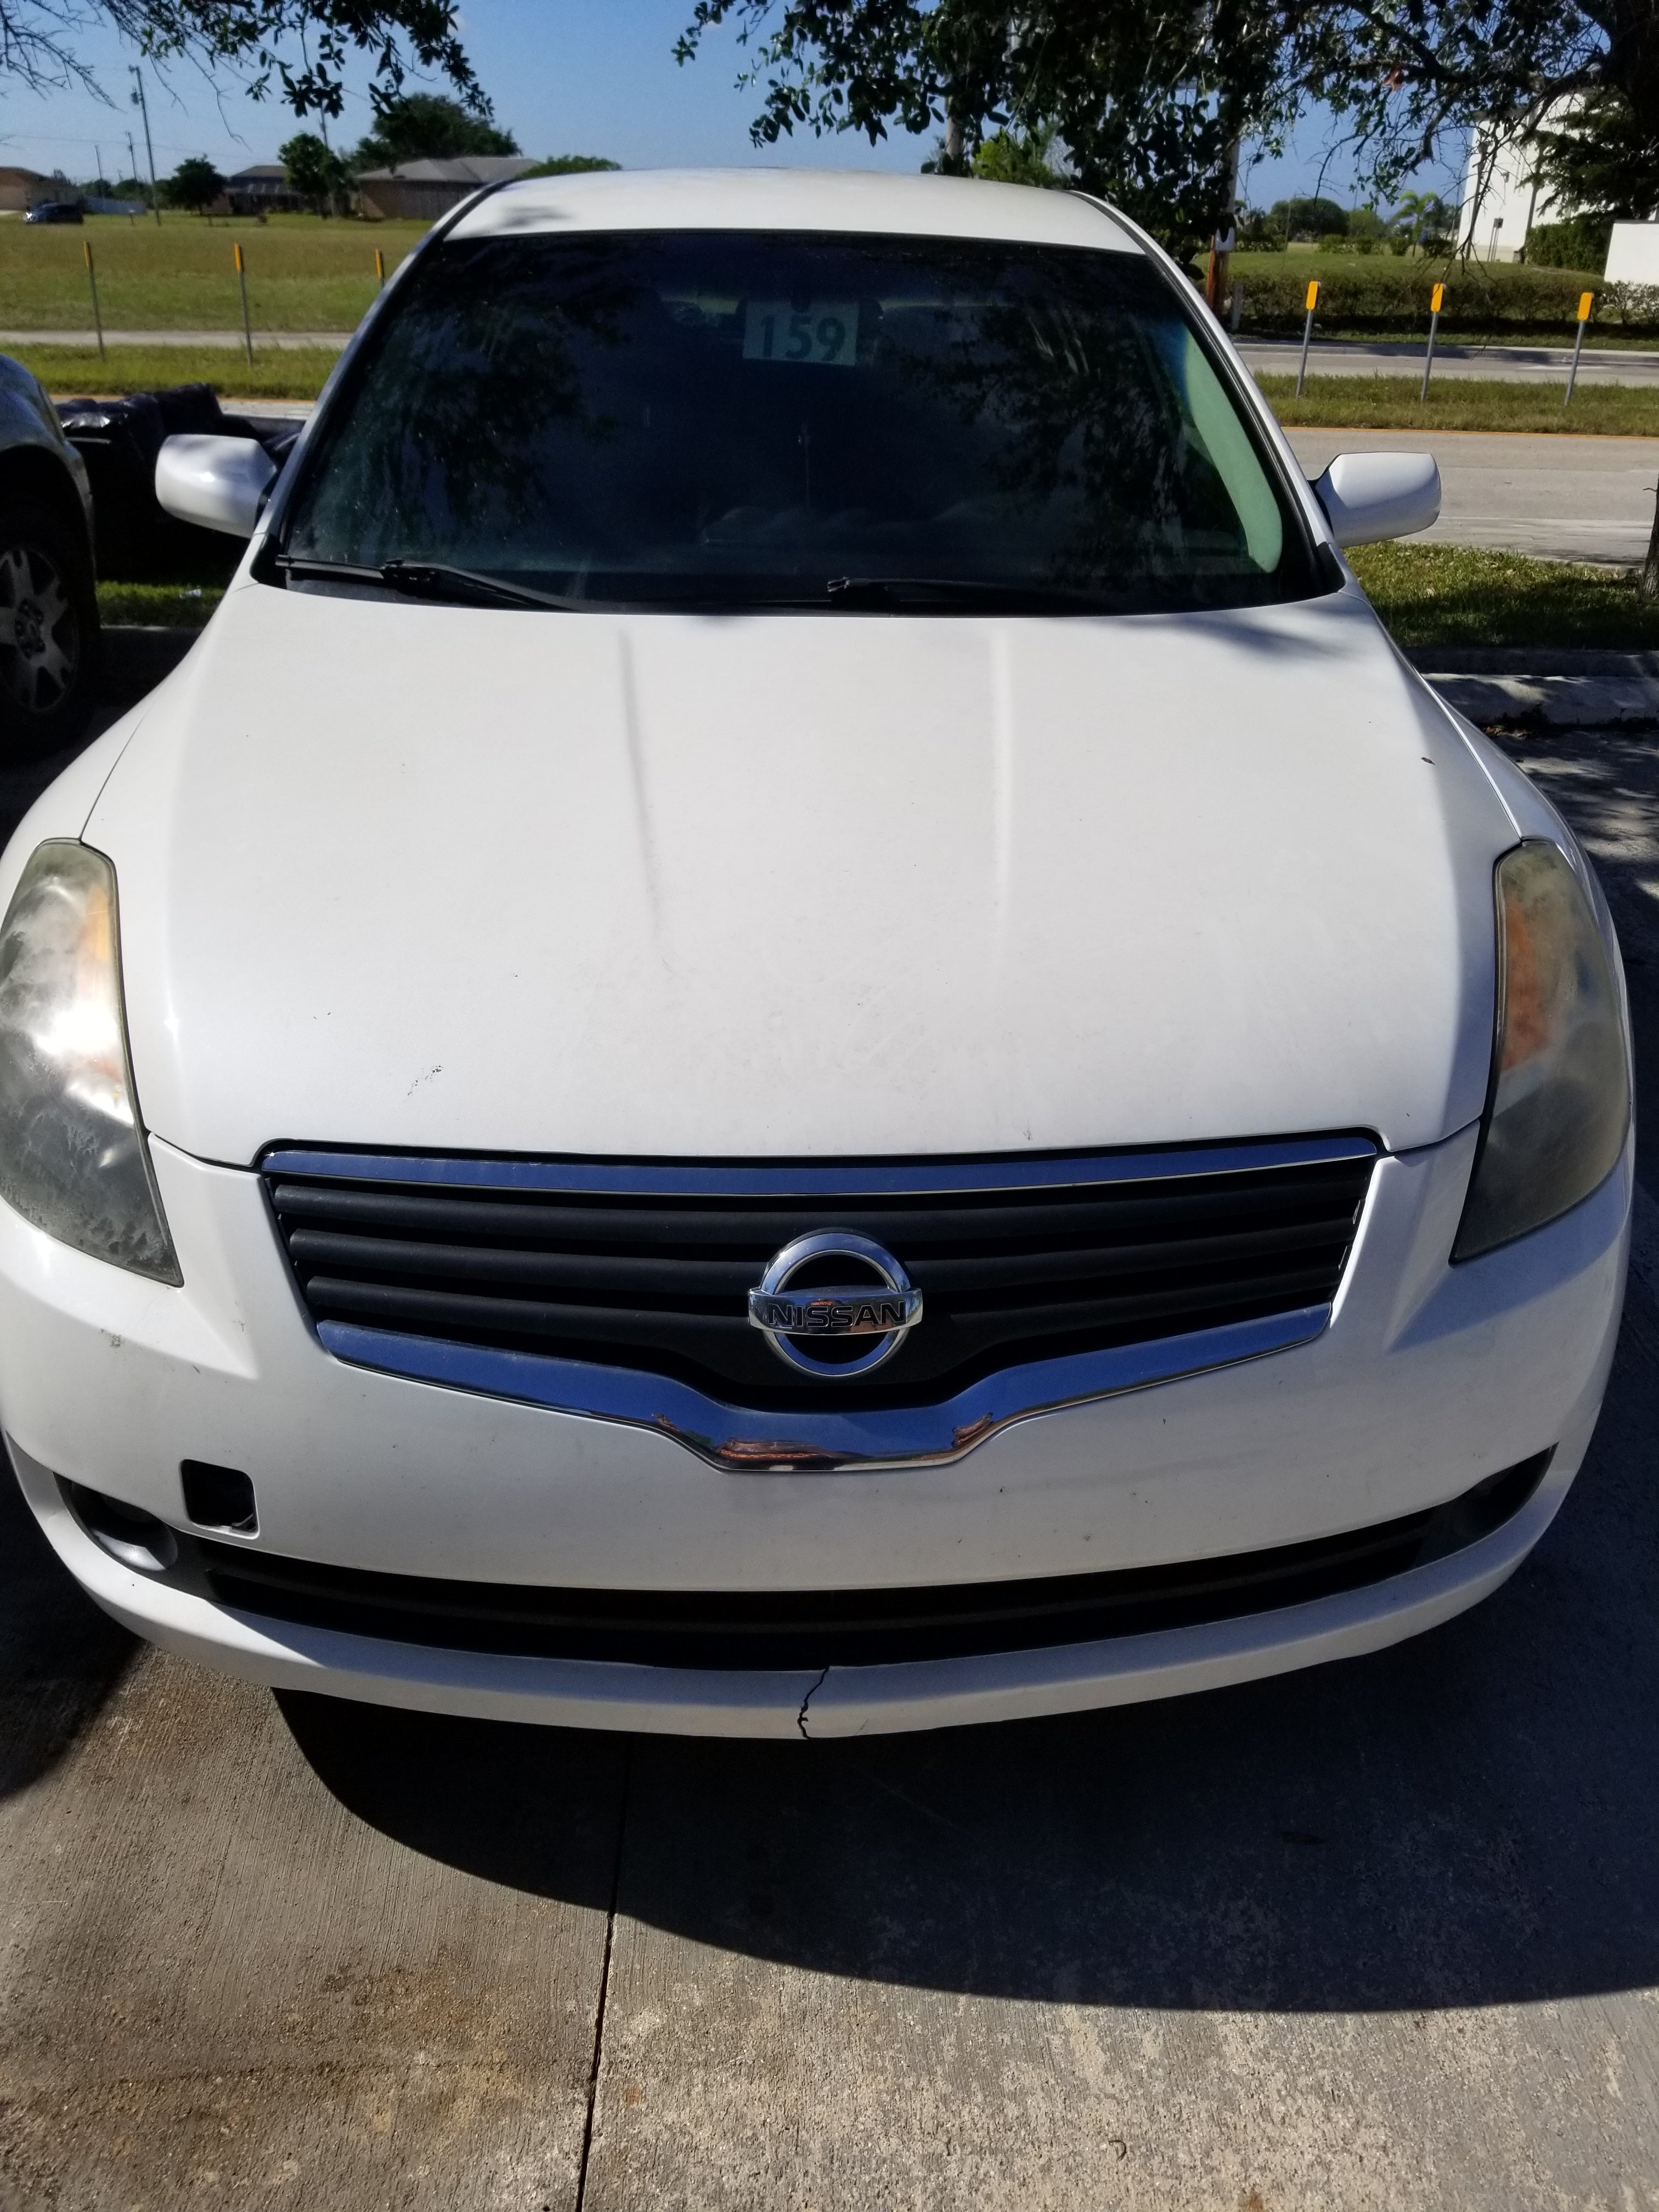 Junk 2007 Nissan Altima in Cape Coral